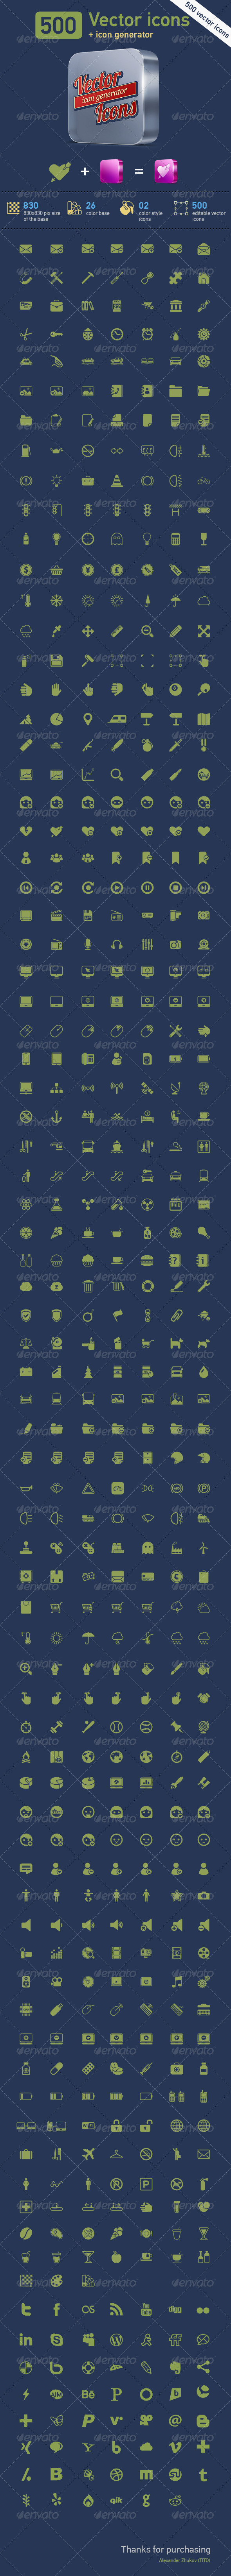 GraphicRiver 500 Vector Icons & Icon Generator 2405037